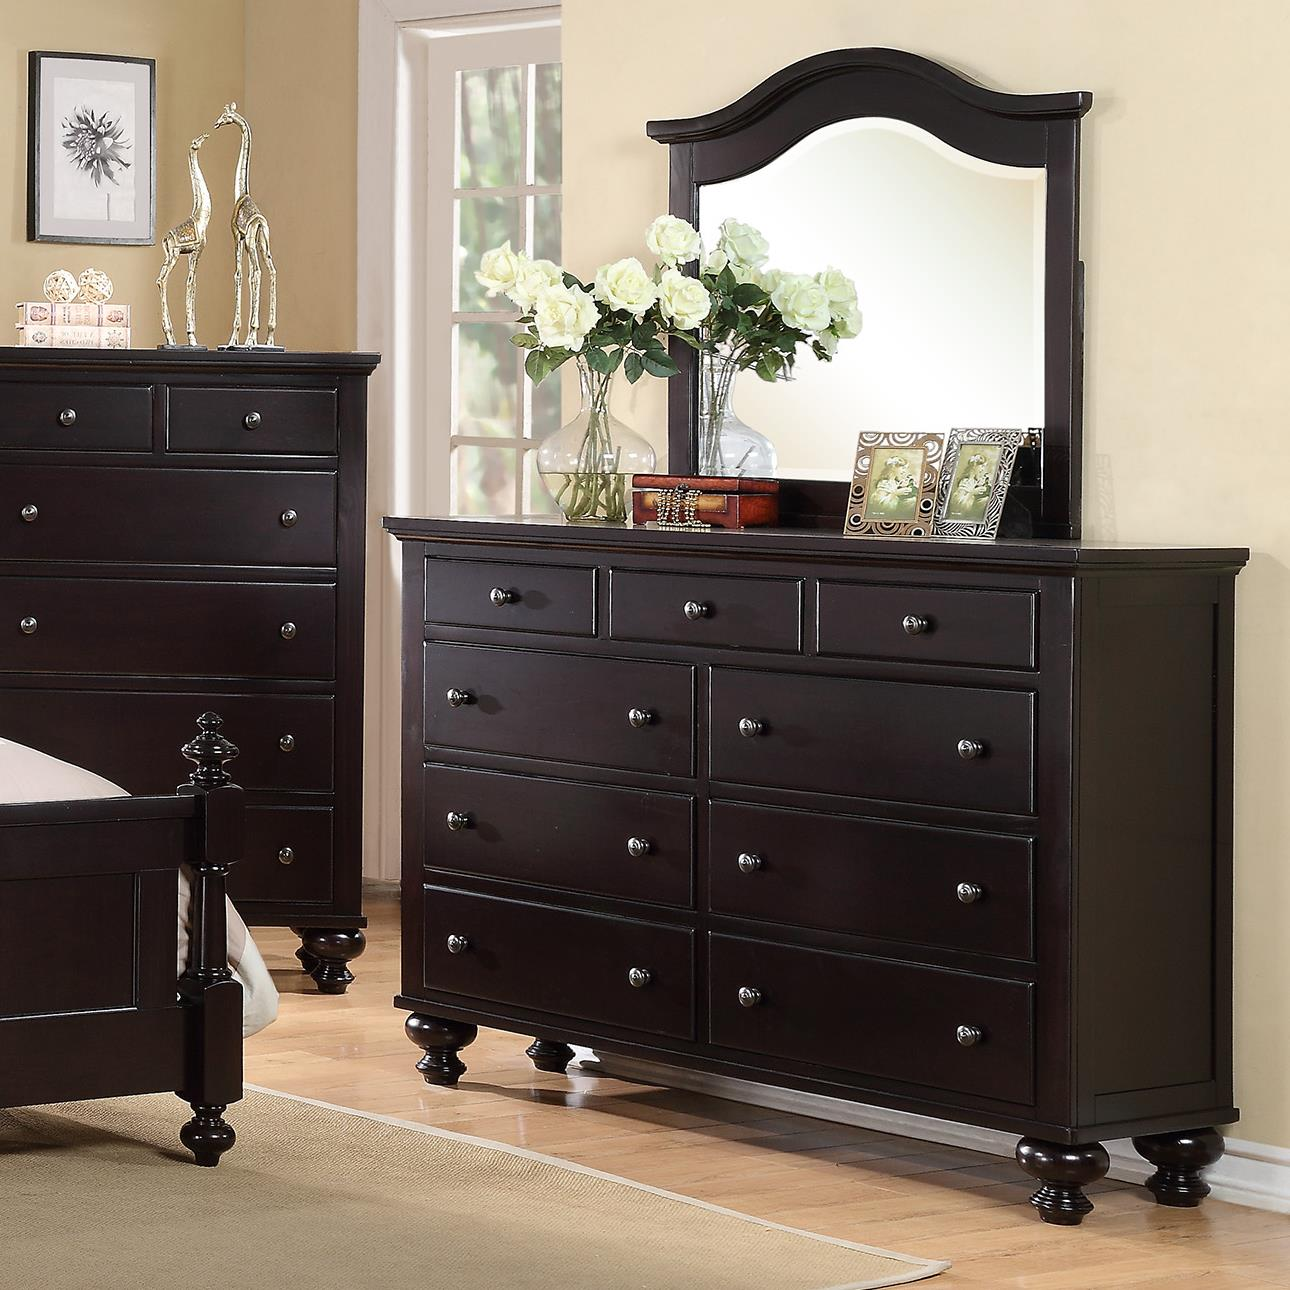 Crown Mark Sommer 9 Drawer Dresser with Mirror Combination - Item Number: B1350-1+ B1350-11